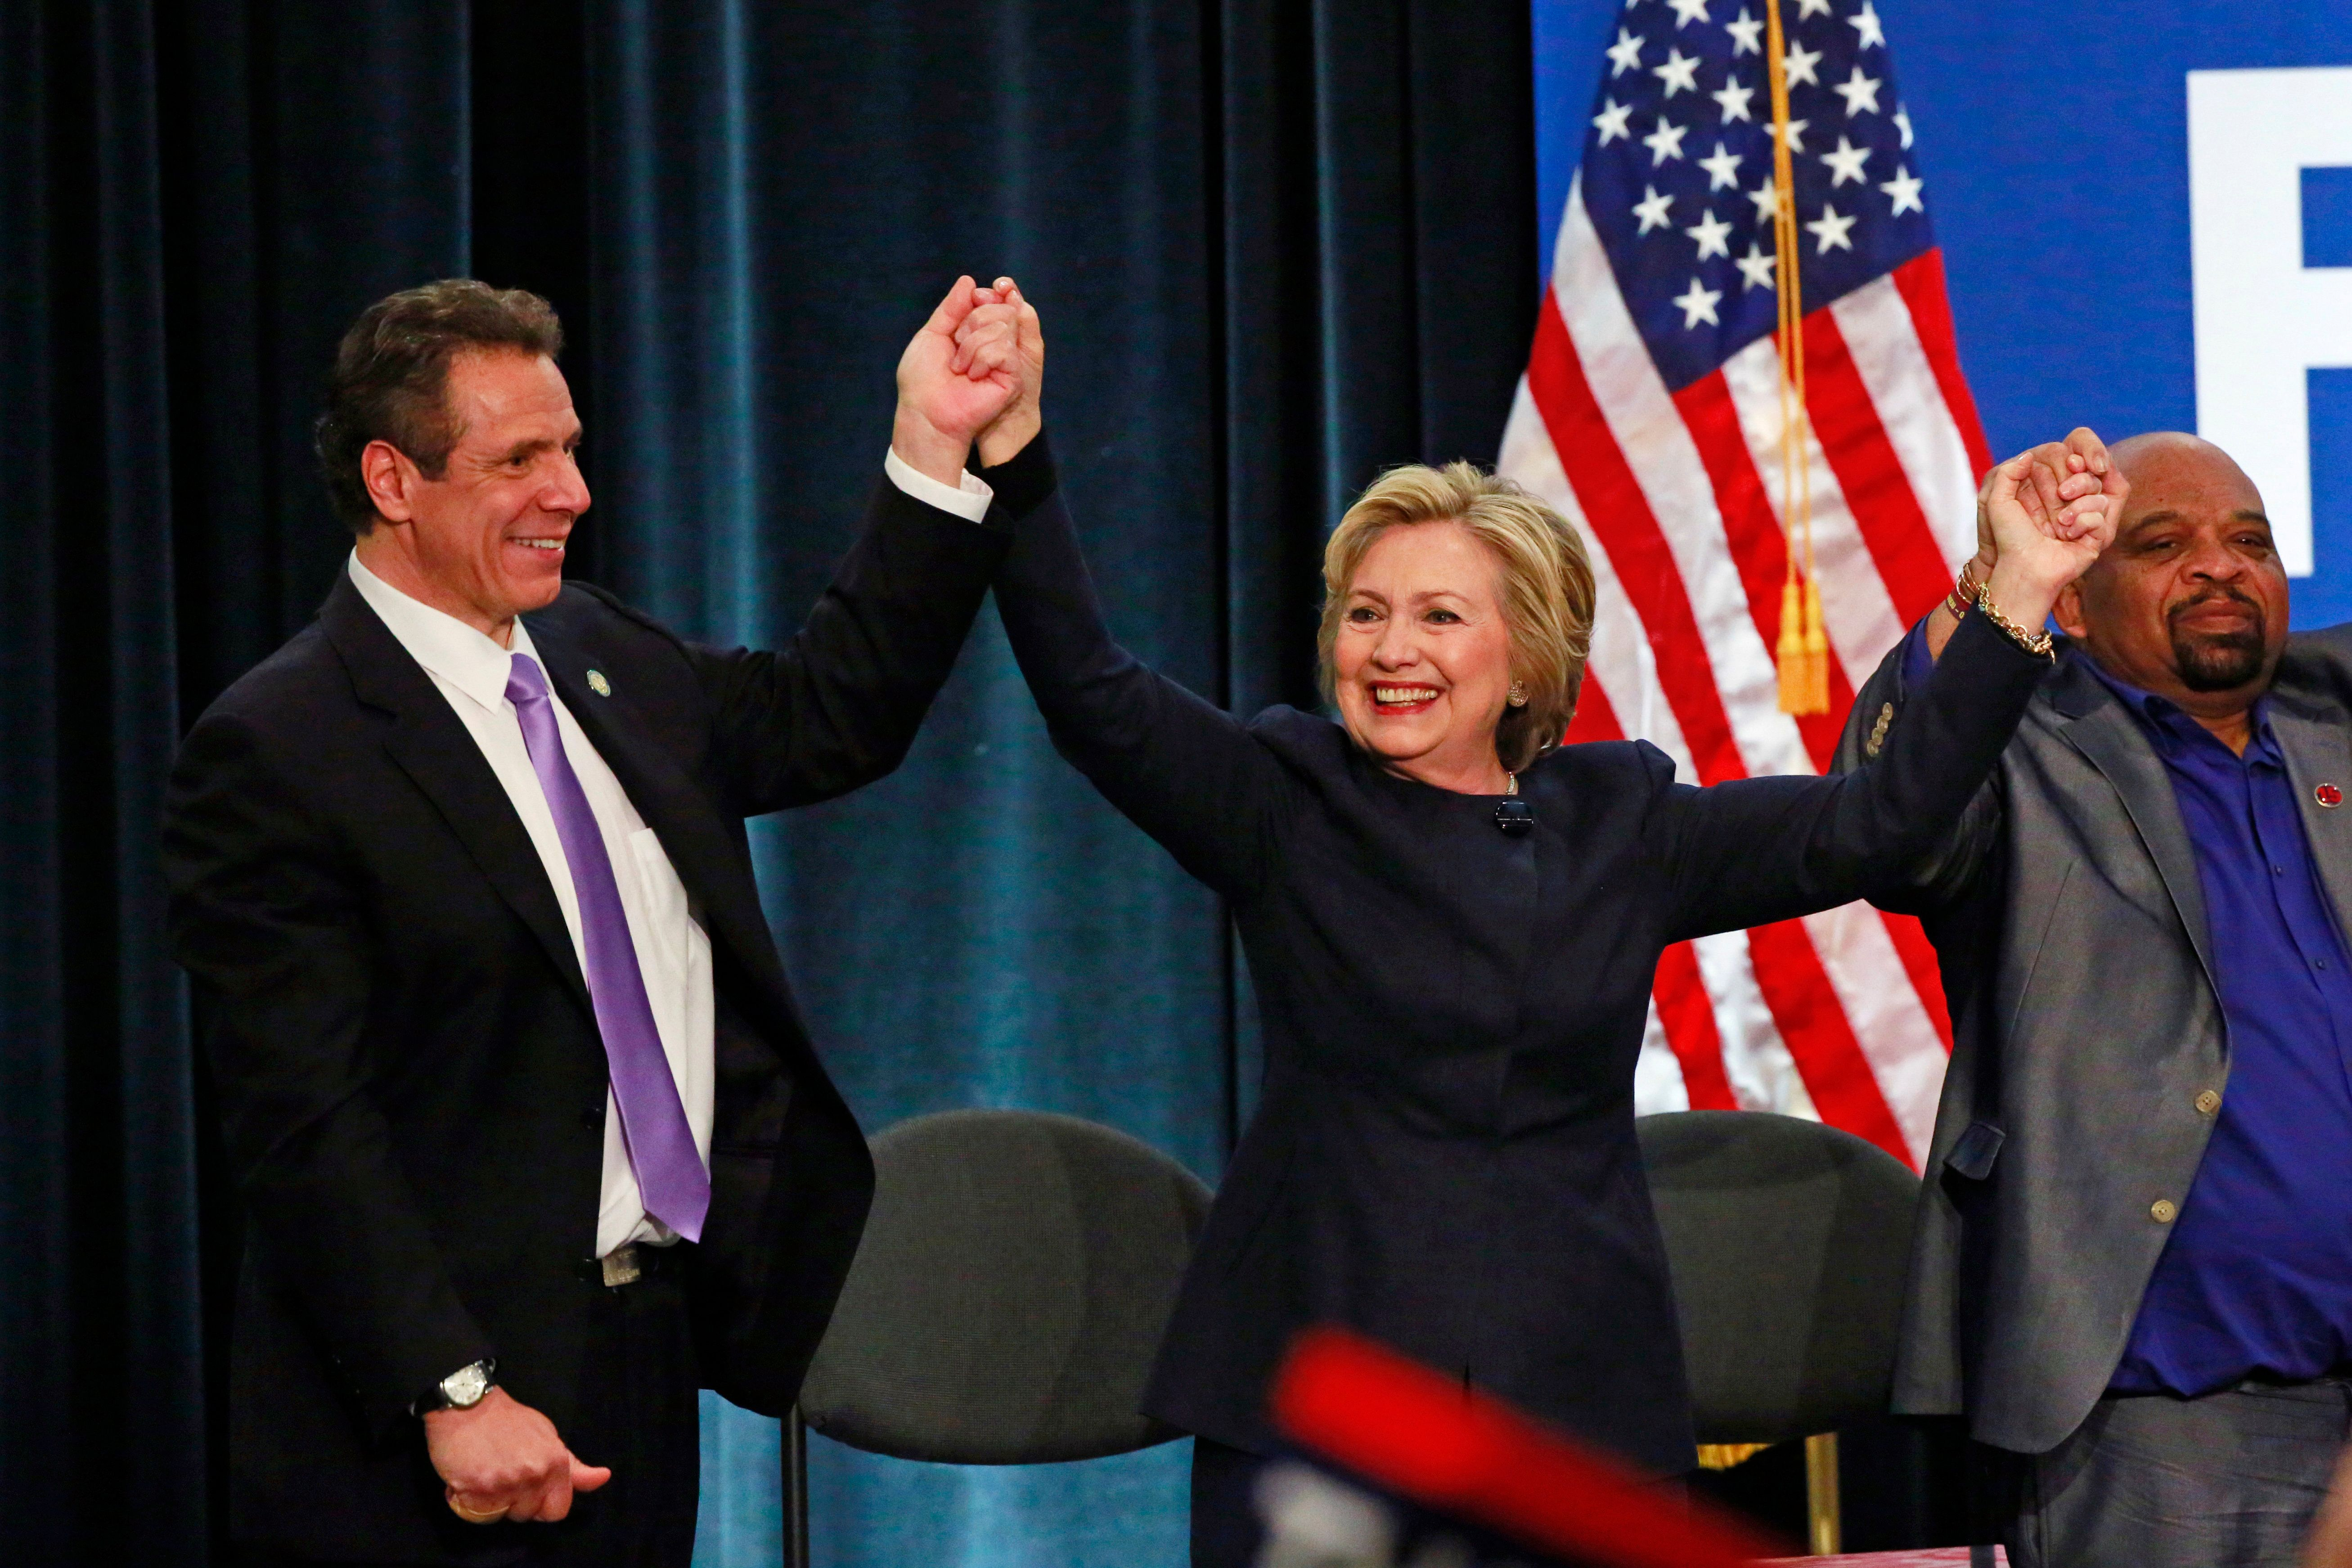 Former presidential candidate Hillary Clinton is expected to endorse New York Gov. Andrew Cuomo's re-election campaign.